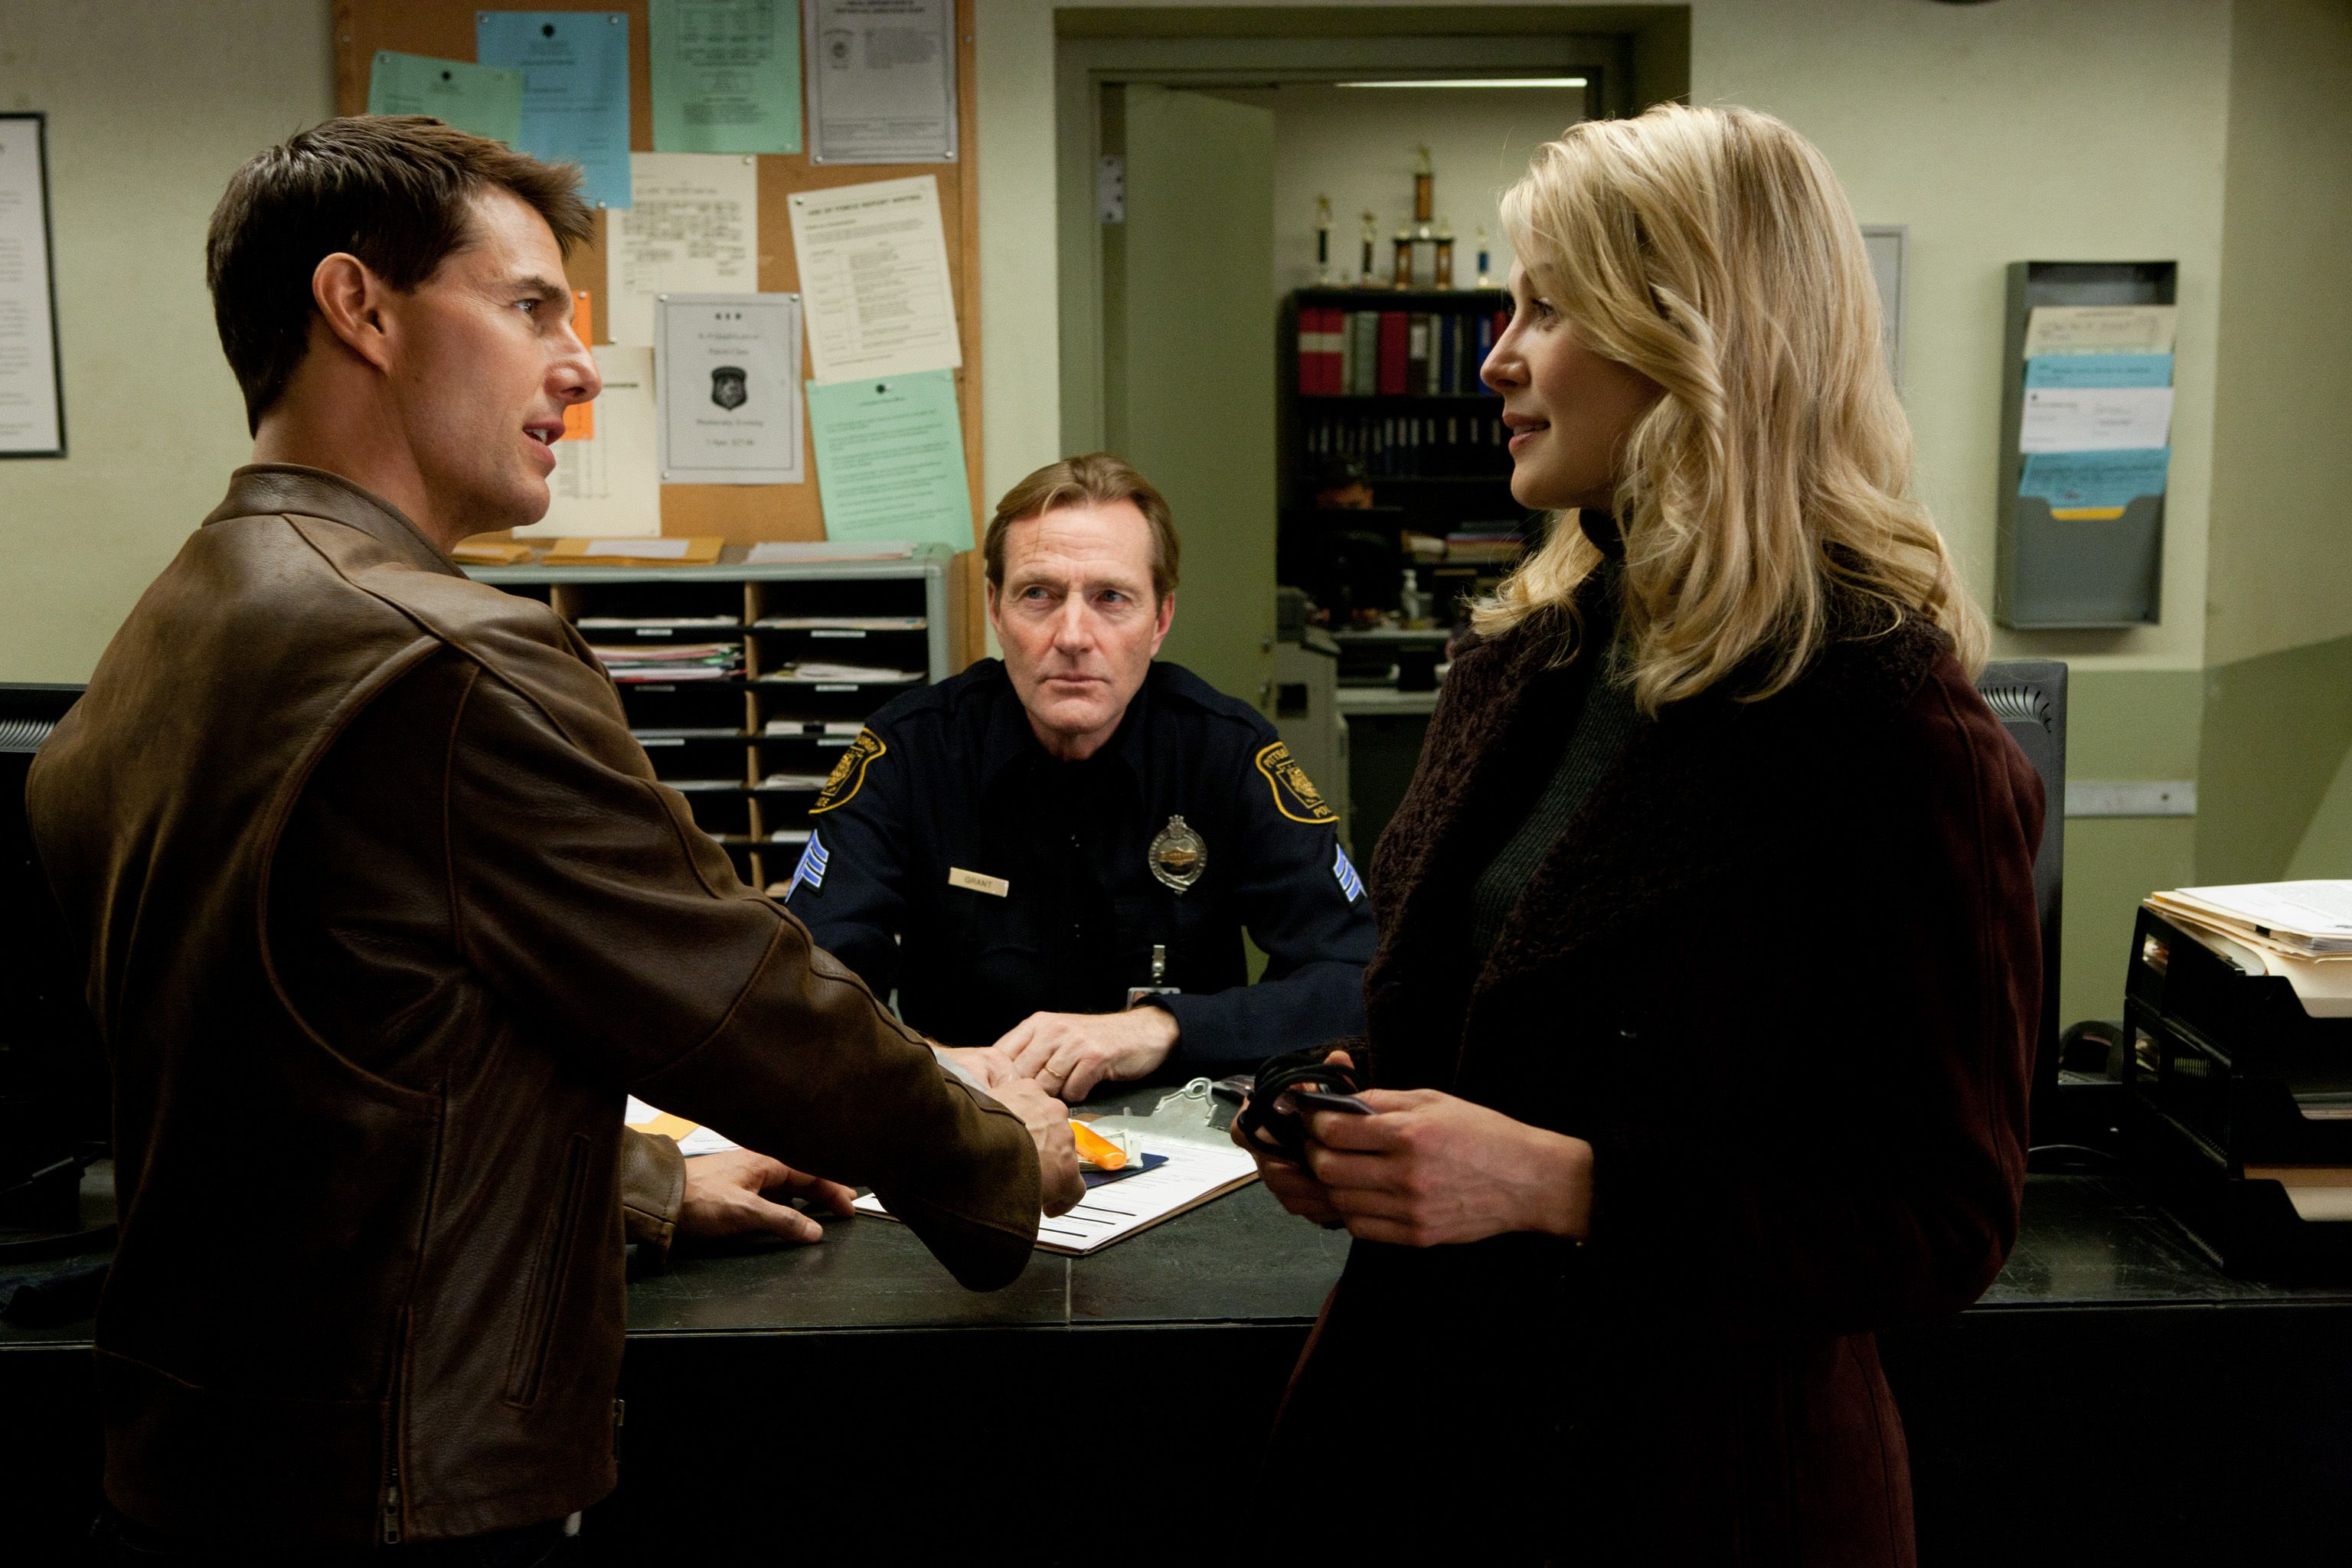 Tom Cruise Rosamund Pike And Lee Child In Jackreacher Jack Reacher Tom Cruise Jack Reacher Movie